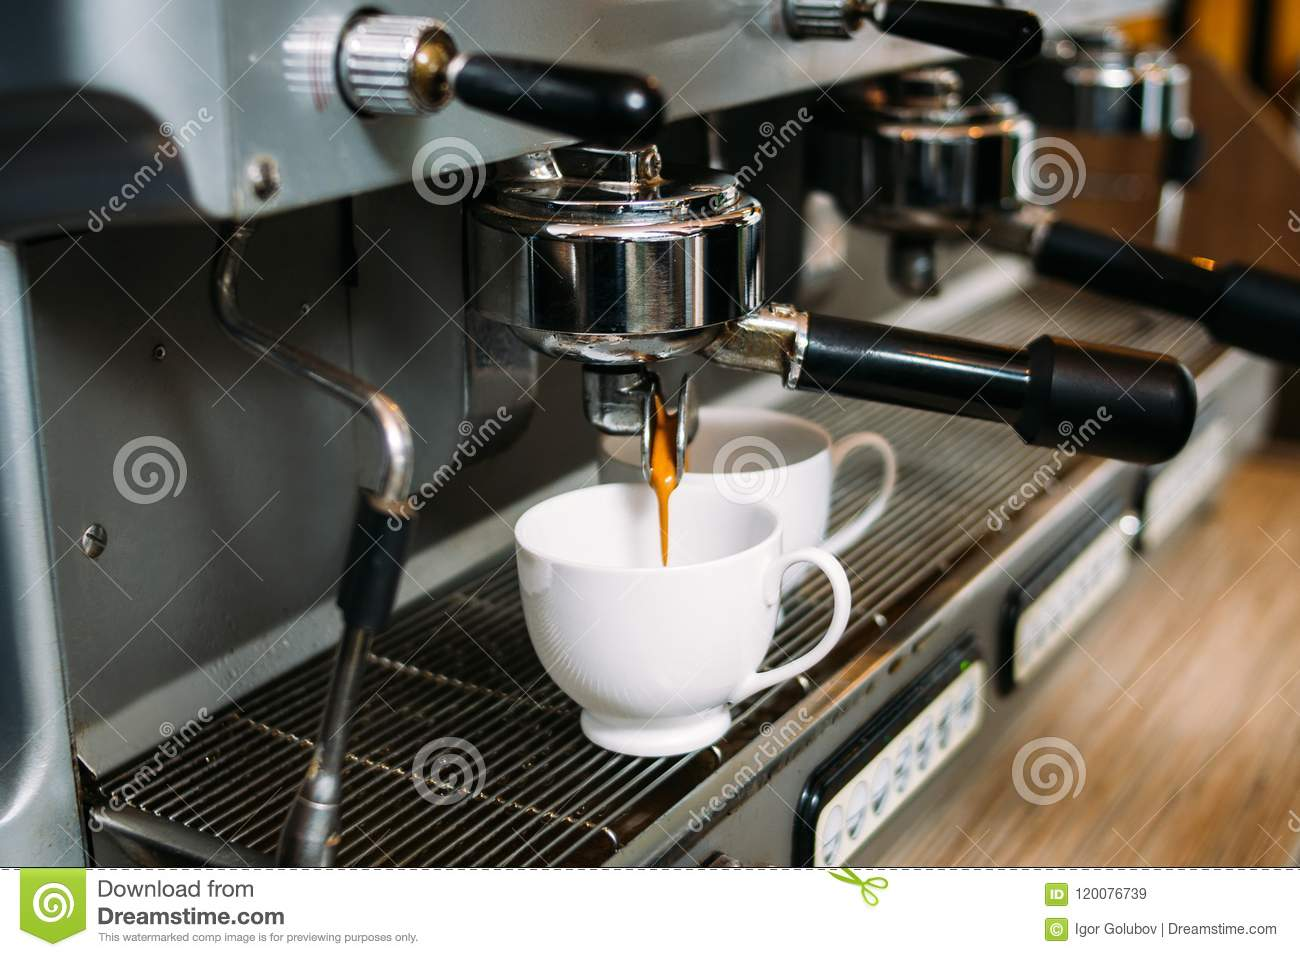 f8673240caf Drink pouring from coffee making machine into two white cups. morning  caffeine intake ritual. tasty hot dose of energy